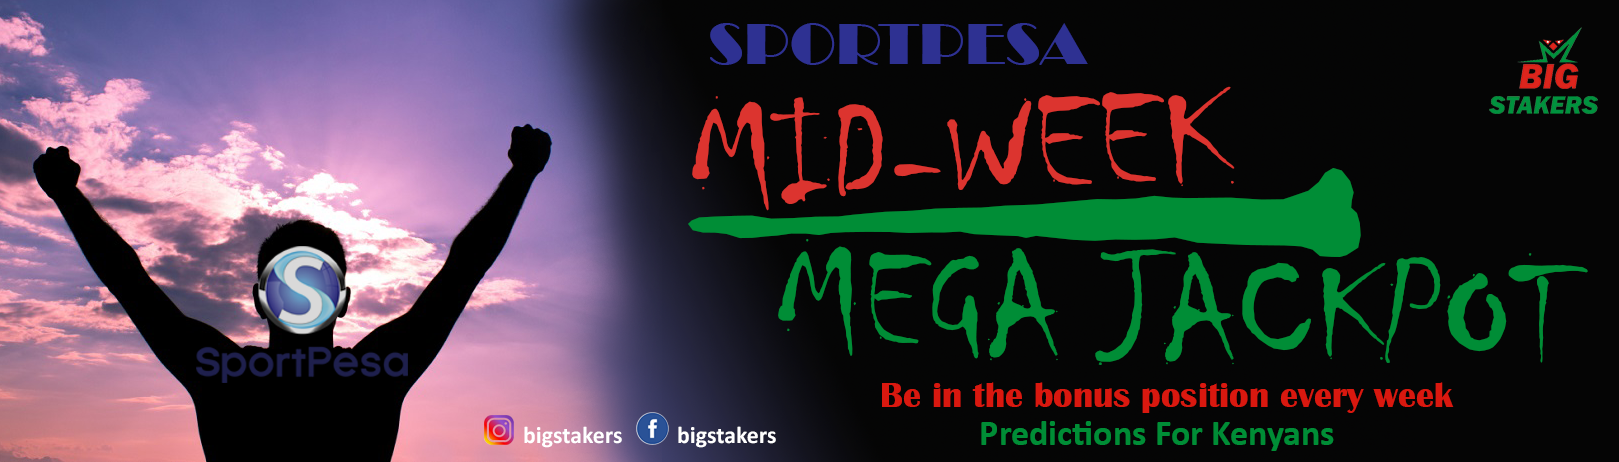 BIG STAKERS - FOOTBALL PREDICTION WEBSITE